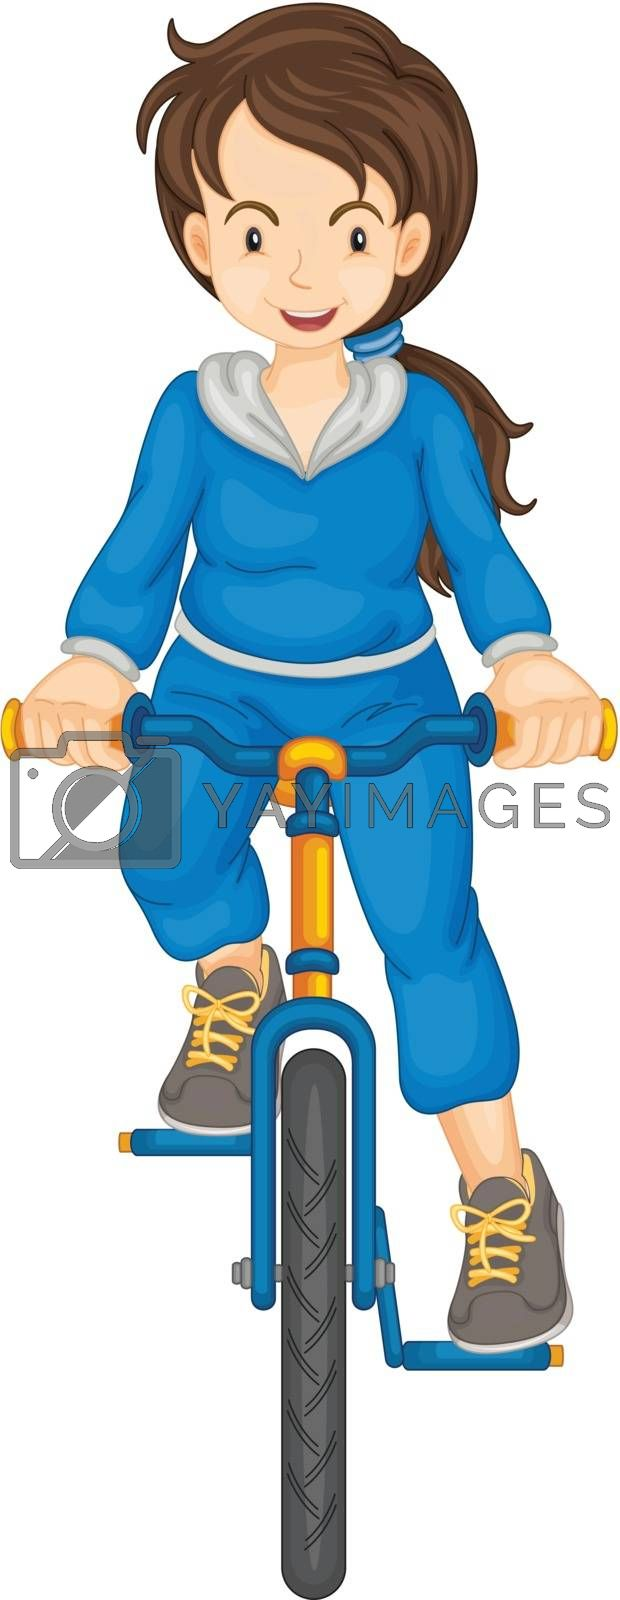 Royalty free image of Sports girl by iimages